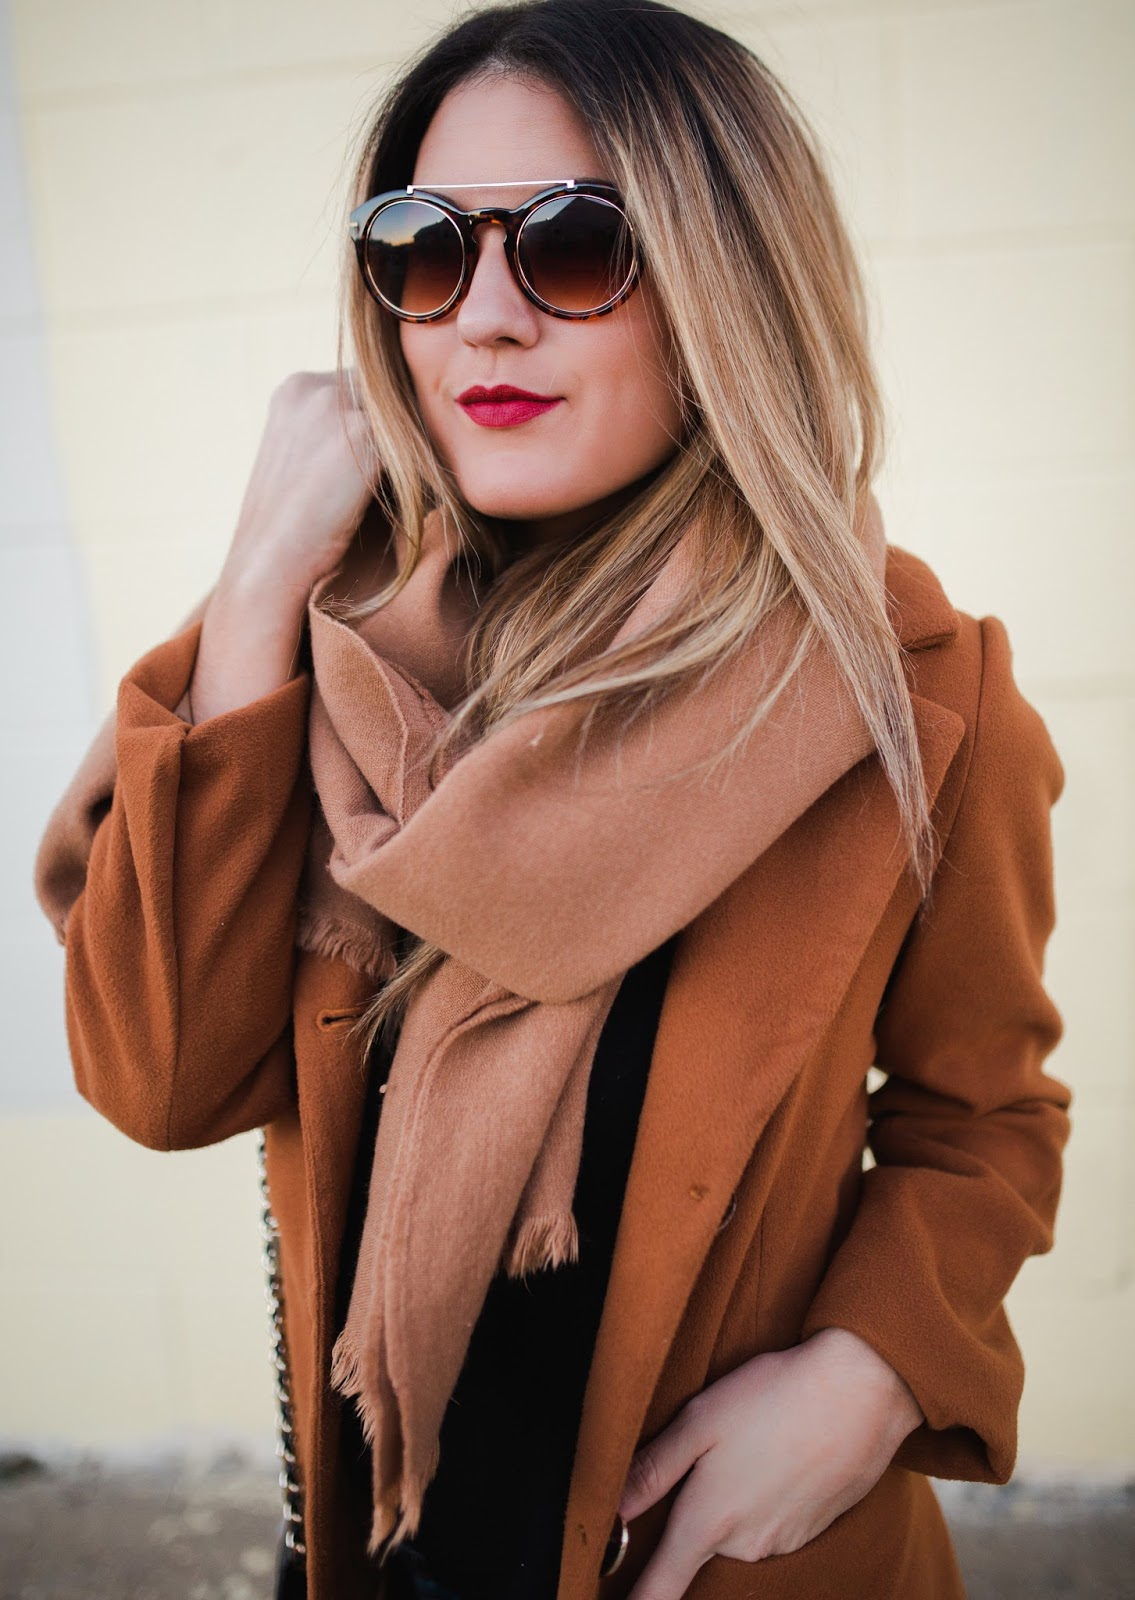 Red Lips with Camel - My Cup of Chic